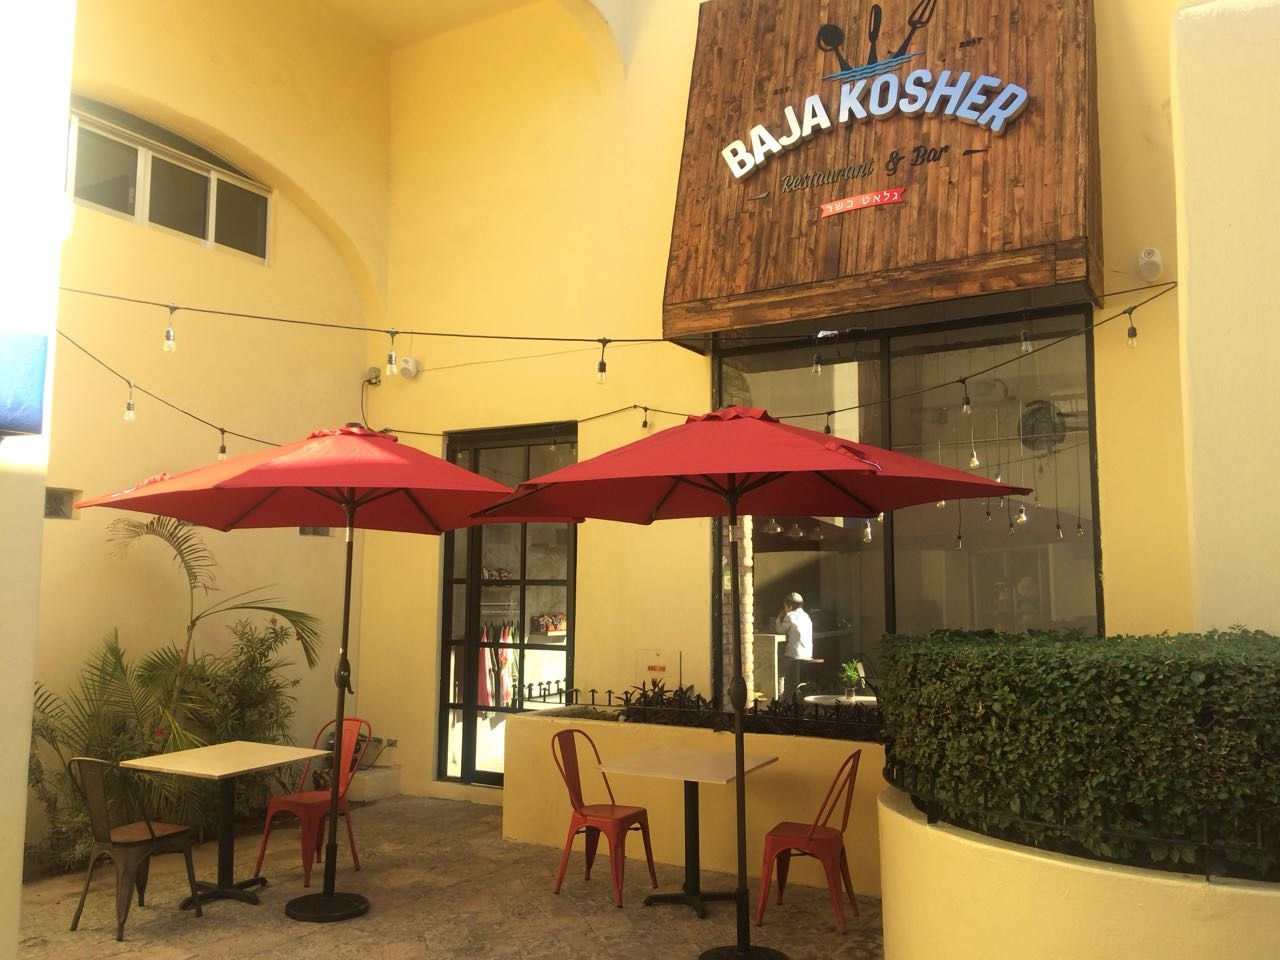 November 20th Was A Milestone For The Cabo San Lucas Community In Mexico Which Opened Its Doors To Very First Kosher Restaurant Area